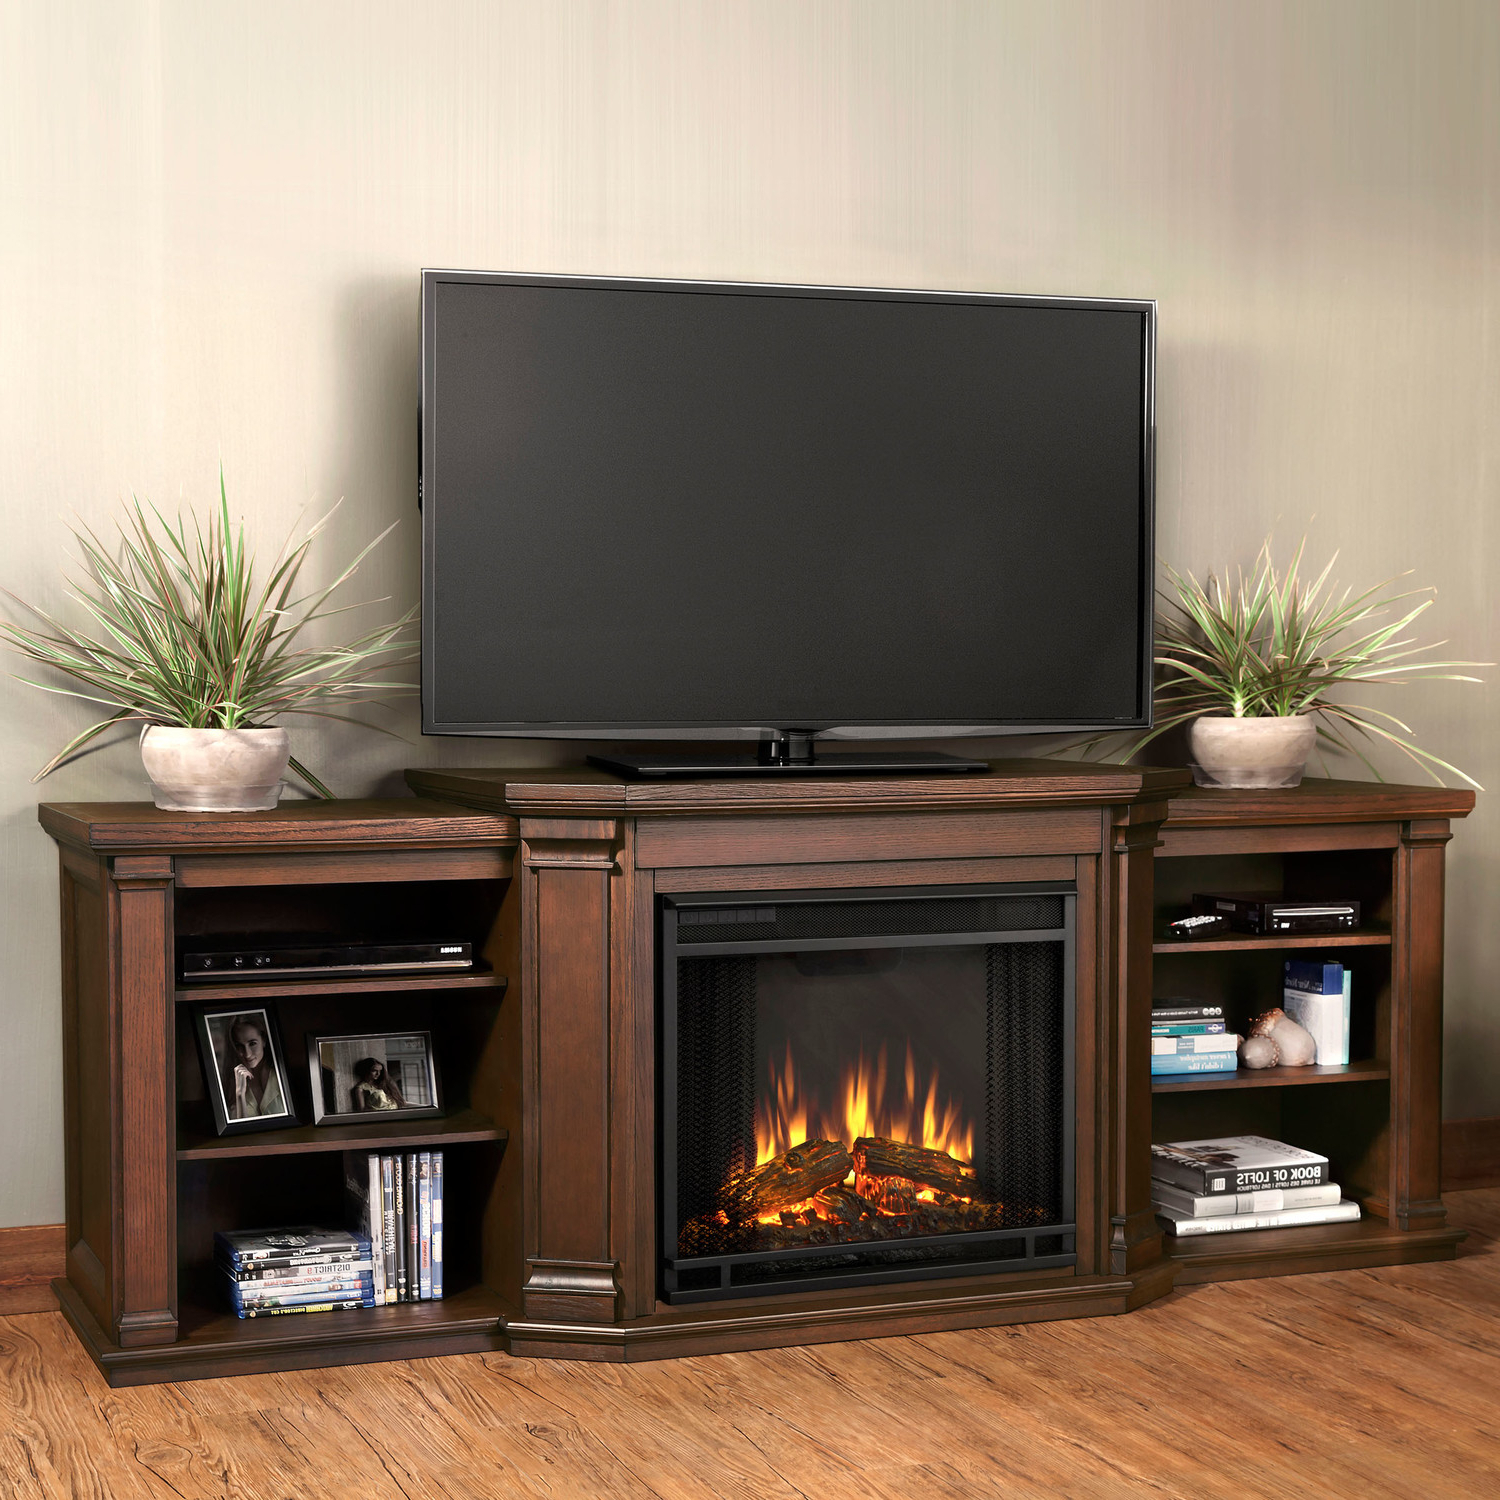 Lowes Electric Fireplace Insert Tv Stand Big Lots 70 Inch Stands With Current Big Tv Stands Furniture (View 16 of 20)